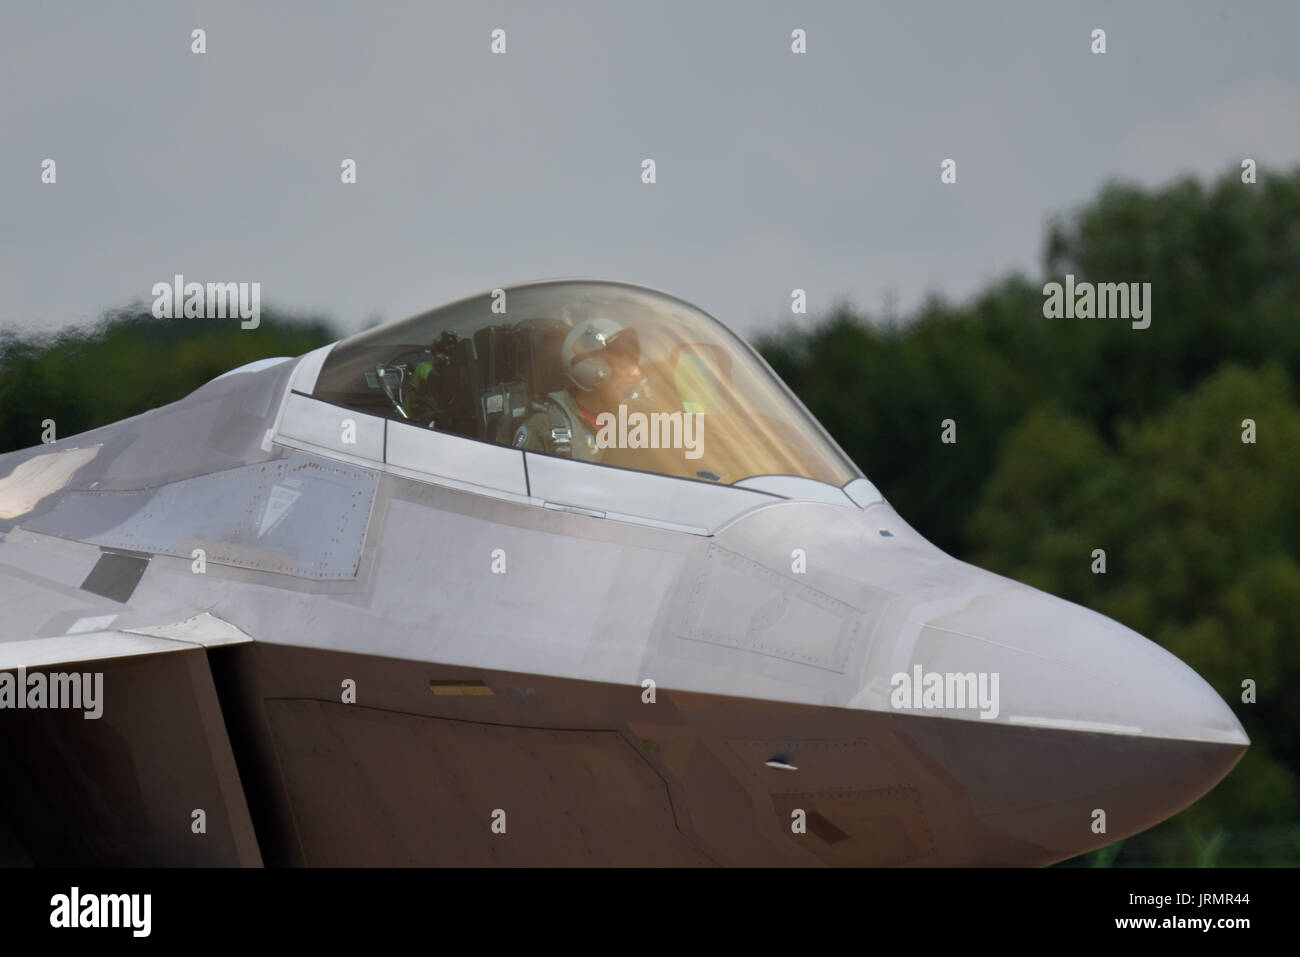 Lockheed Martin F-22 Raptor stealth fighter jet plane. Space for copy - Stock : f22 canopy - memphite.com